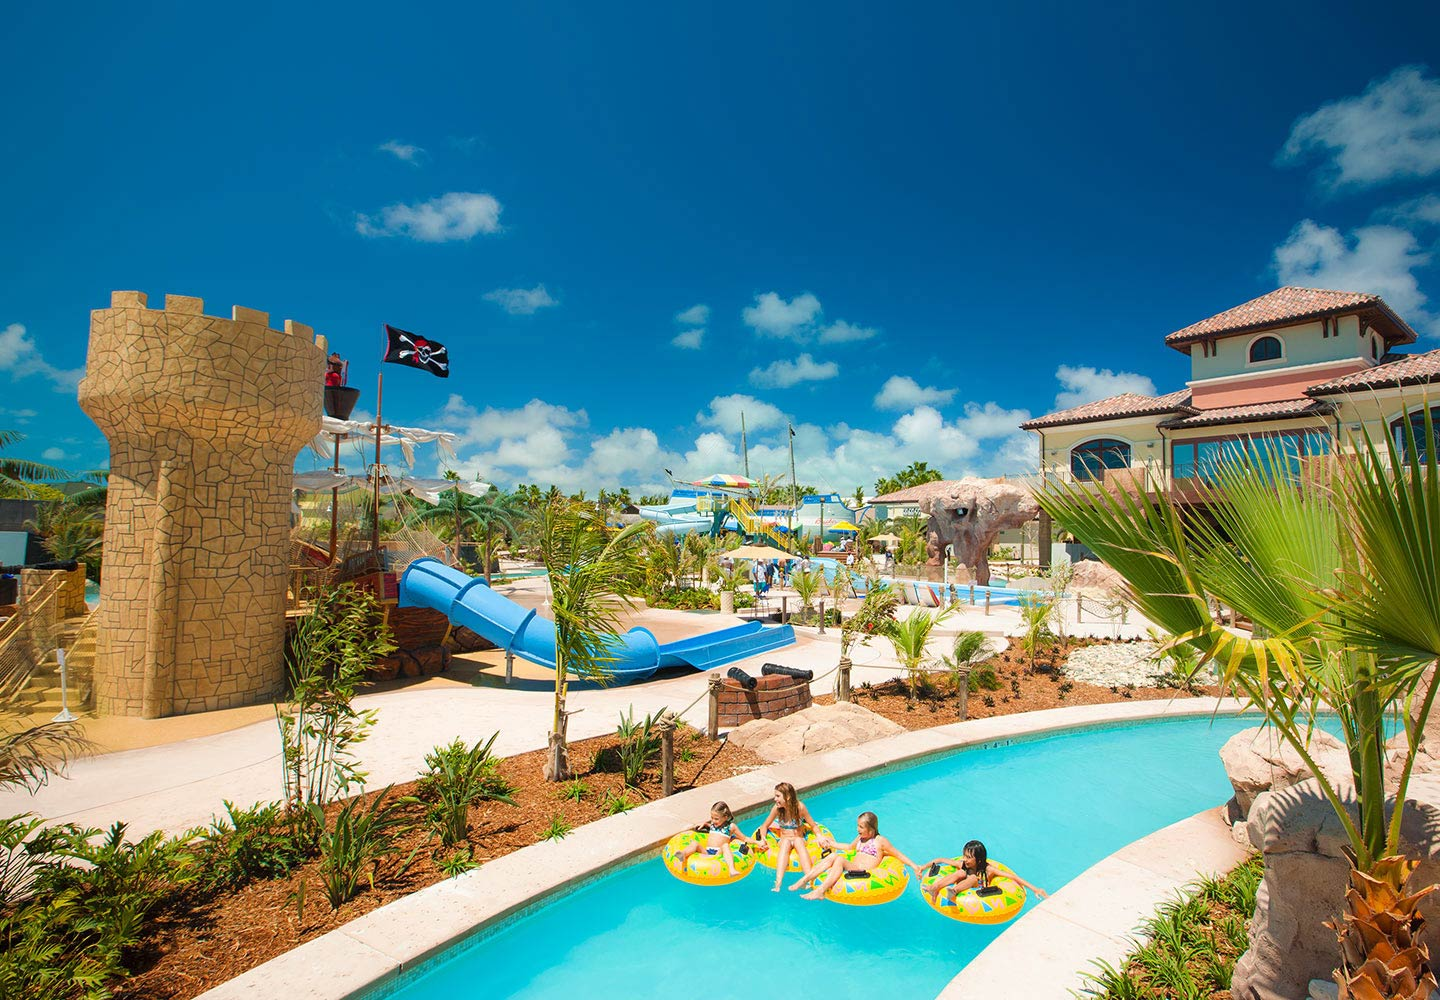 Pirate Island Waterpark at Turks & Caicos Resort | Beaches